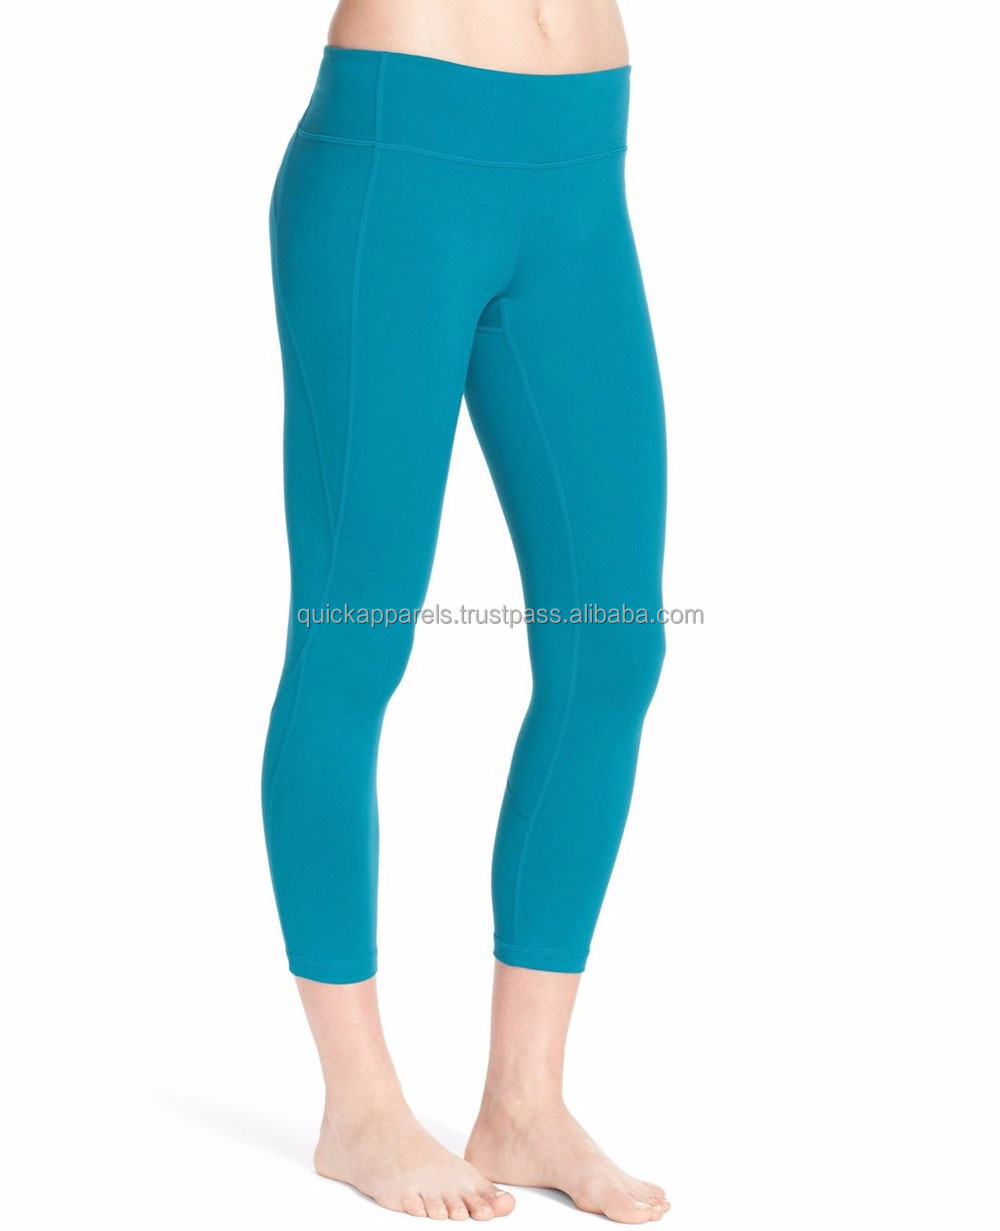 Import full body leggings high quality polyamide tight slimming leggings in